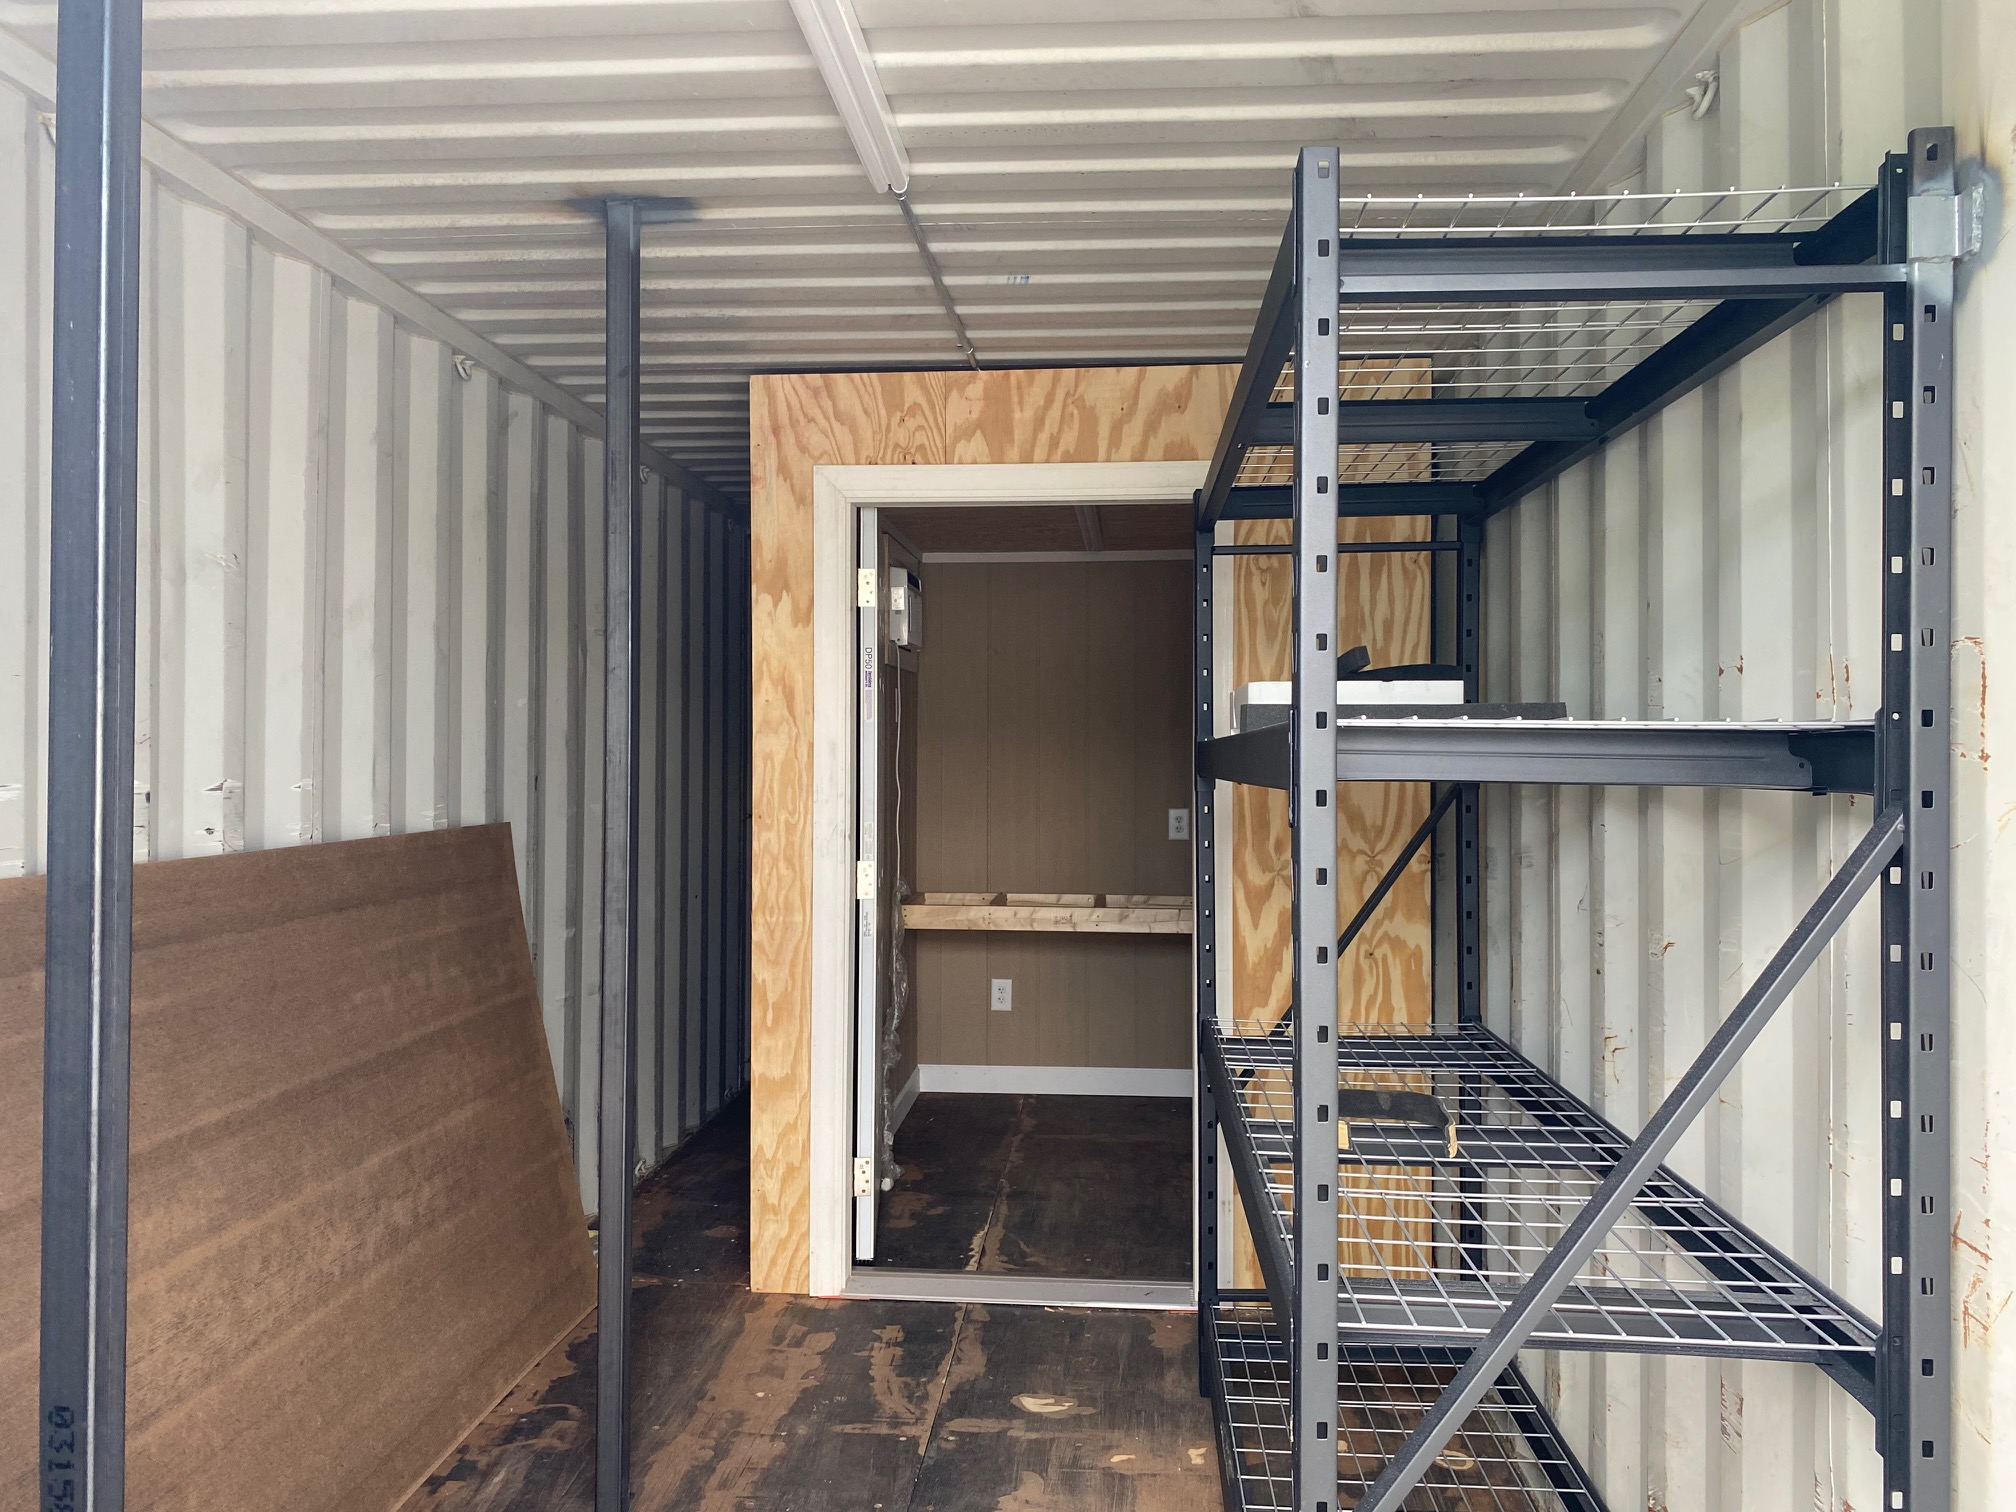 Shelving and interior of storage container